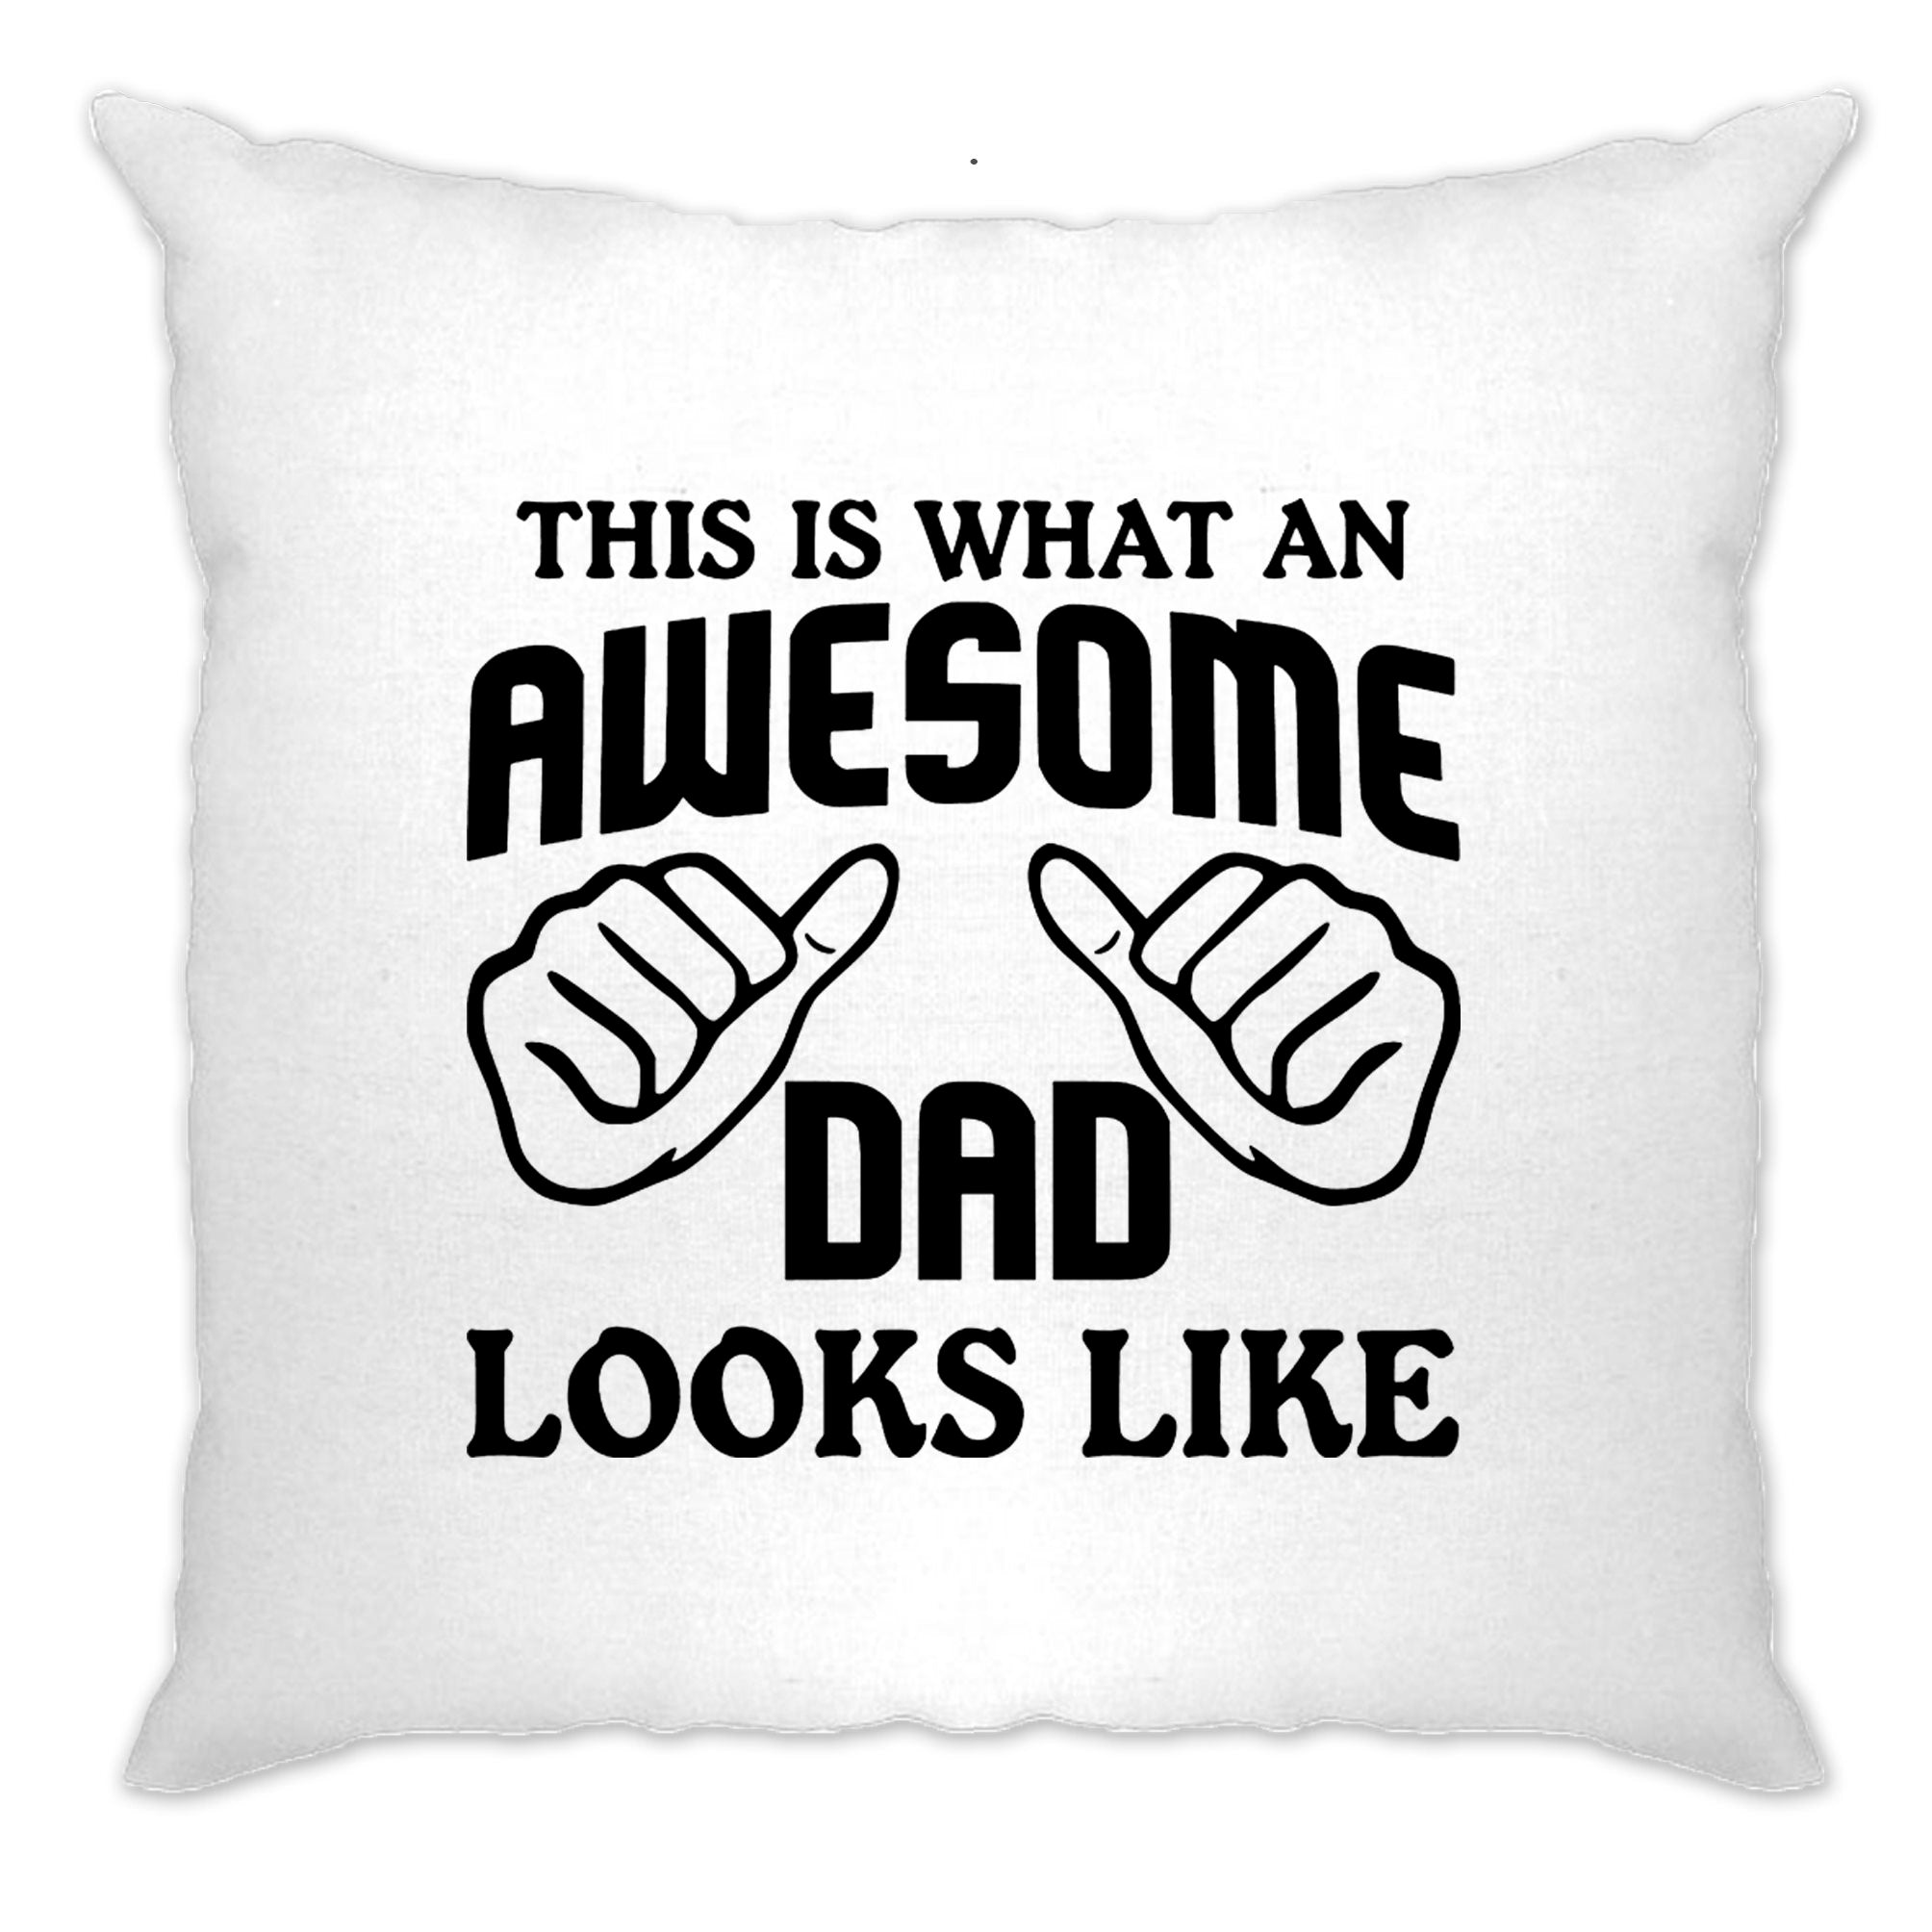 What An Awesome Dad Looks Like Cushion Cover